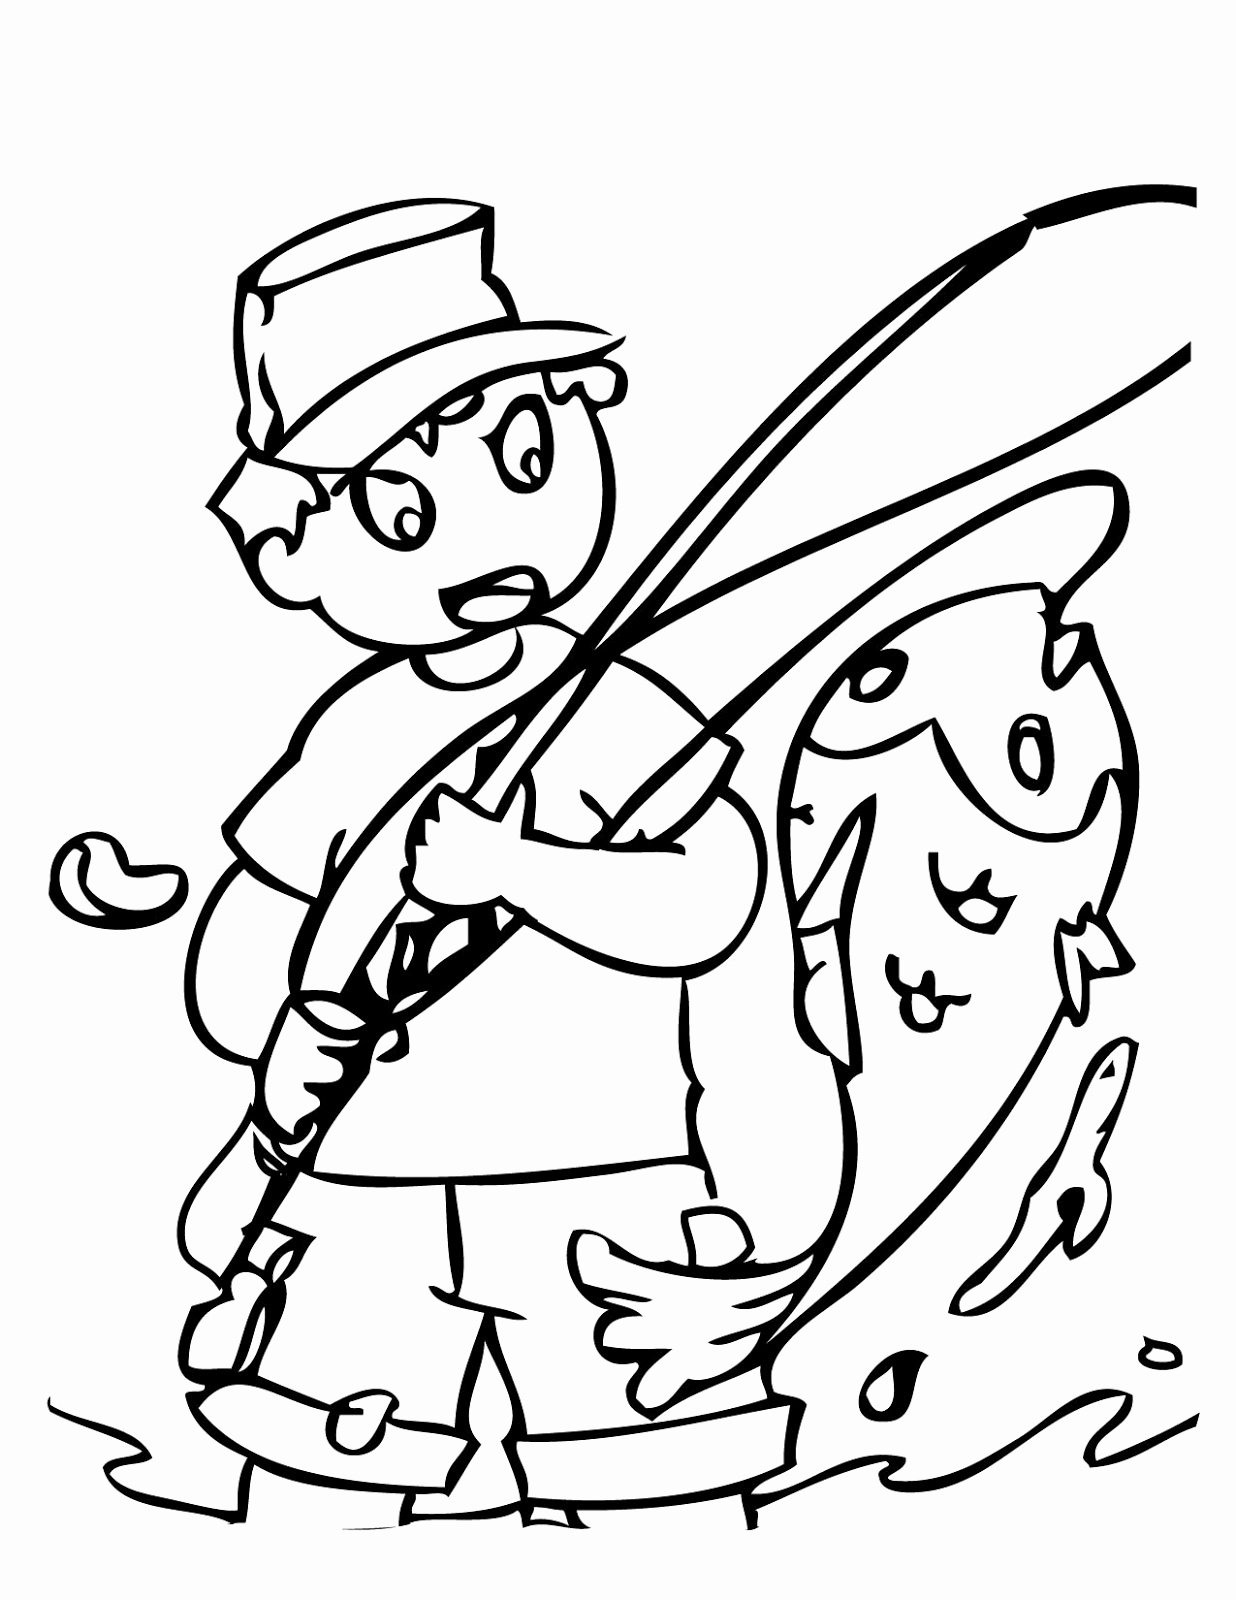 Printable Fish Colouring Pages Luxury Moodus Sportsmen S Club